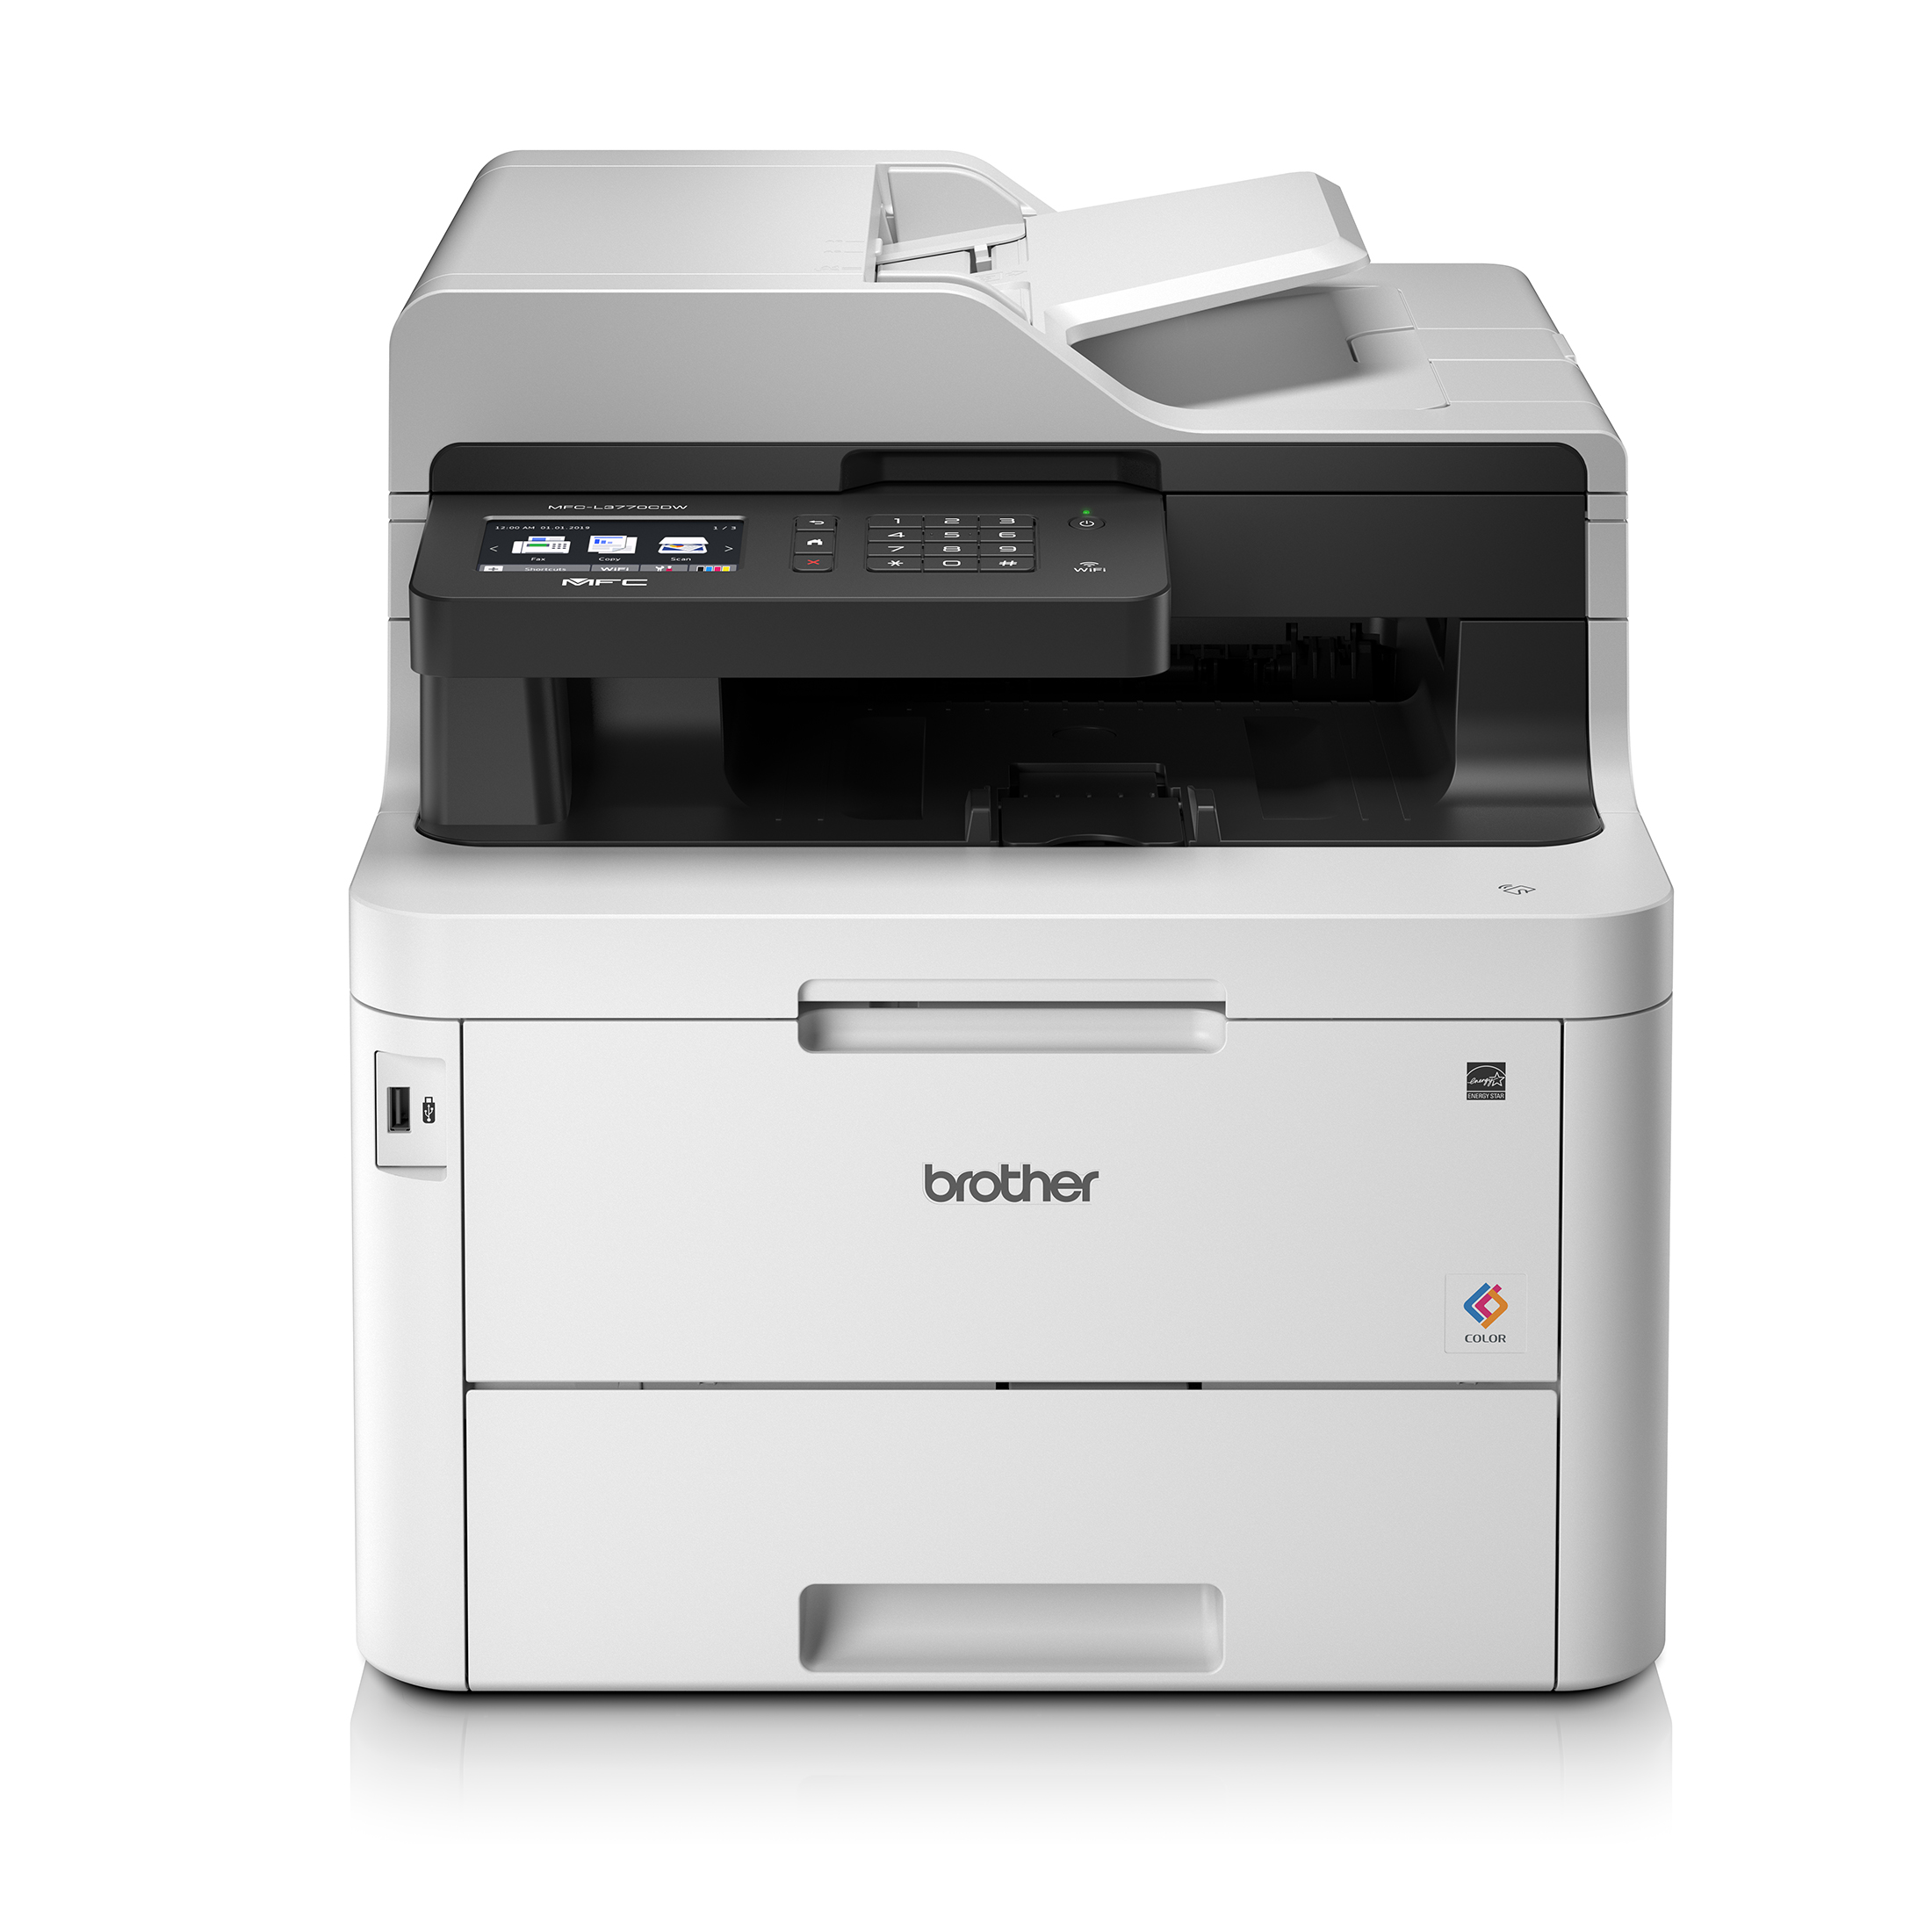 Multifunctional Machines Brother MFC-L3770CDW Colour Laser Printer Wireless 4-in-1 with integrated NFC Ref MFC-L3770CDW